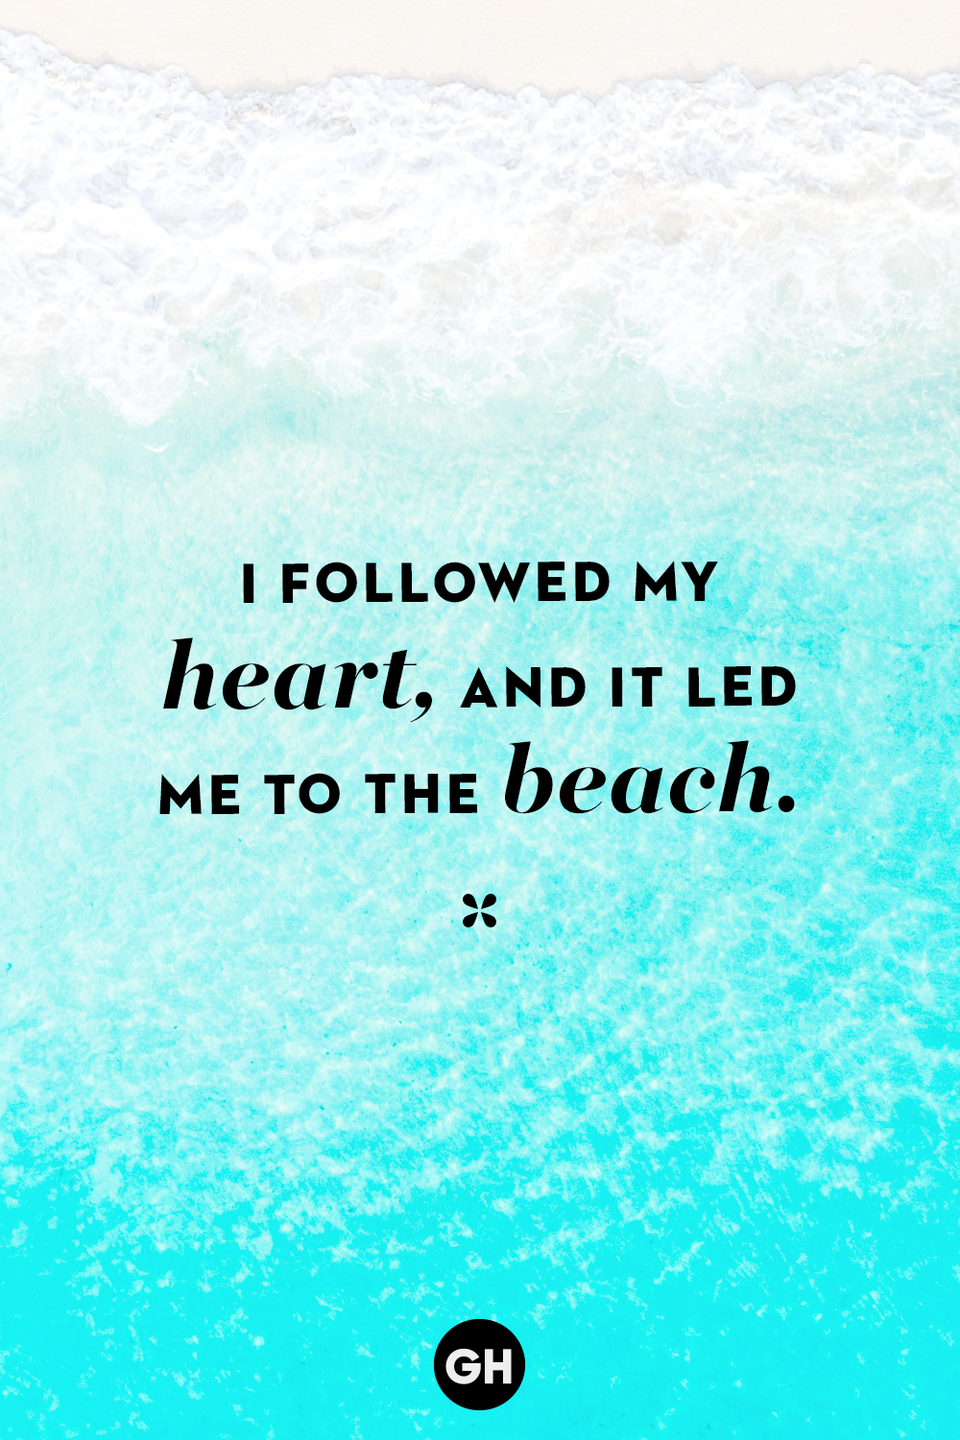 <p>I followed my heart, and it led me to the beach.</p>